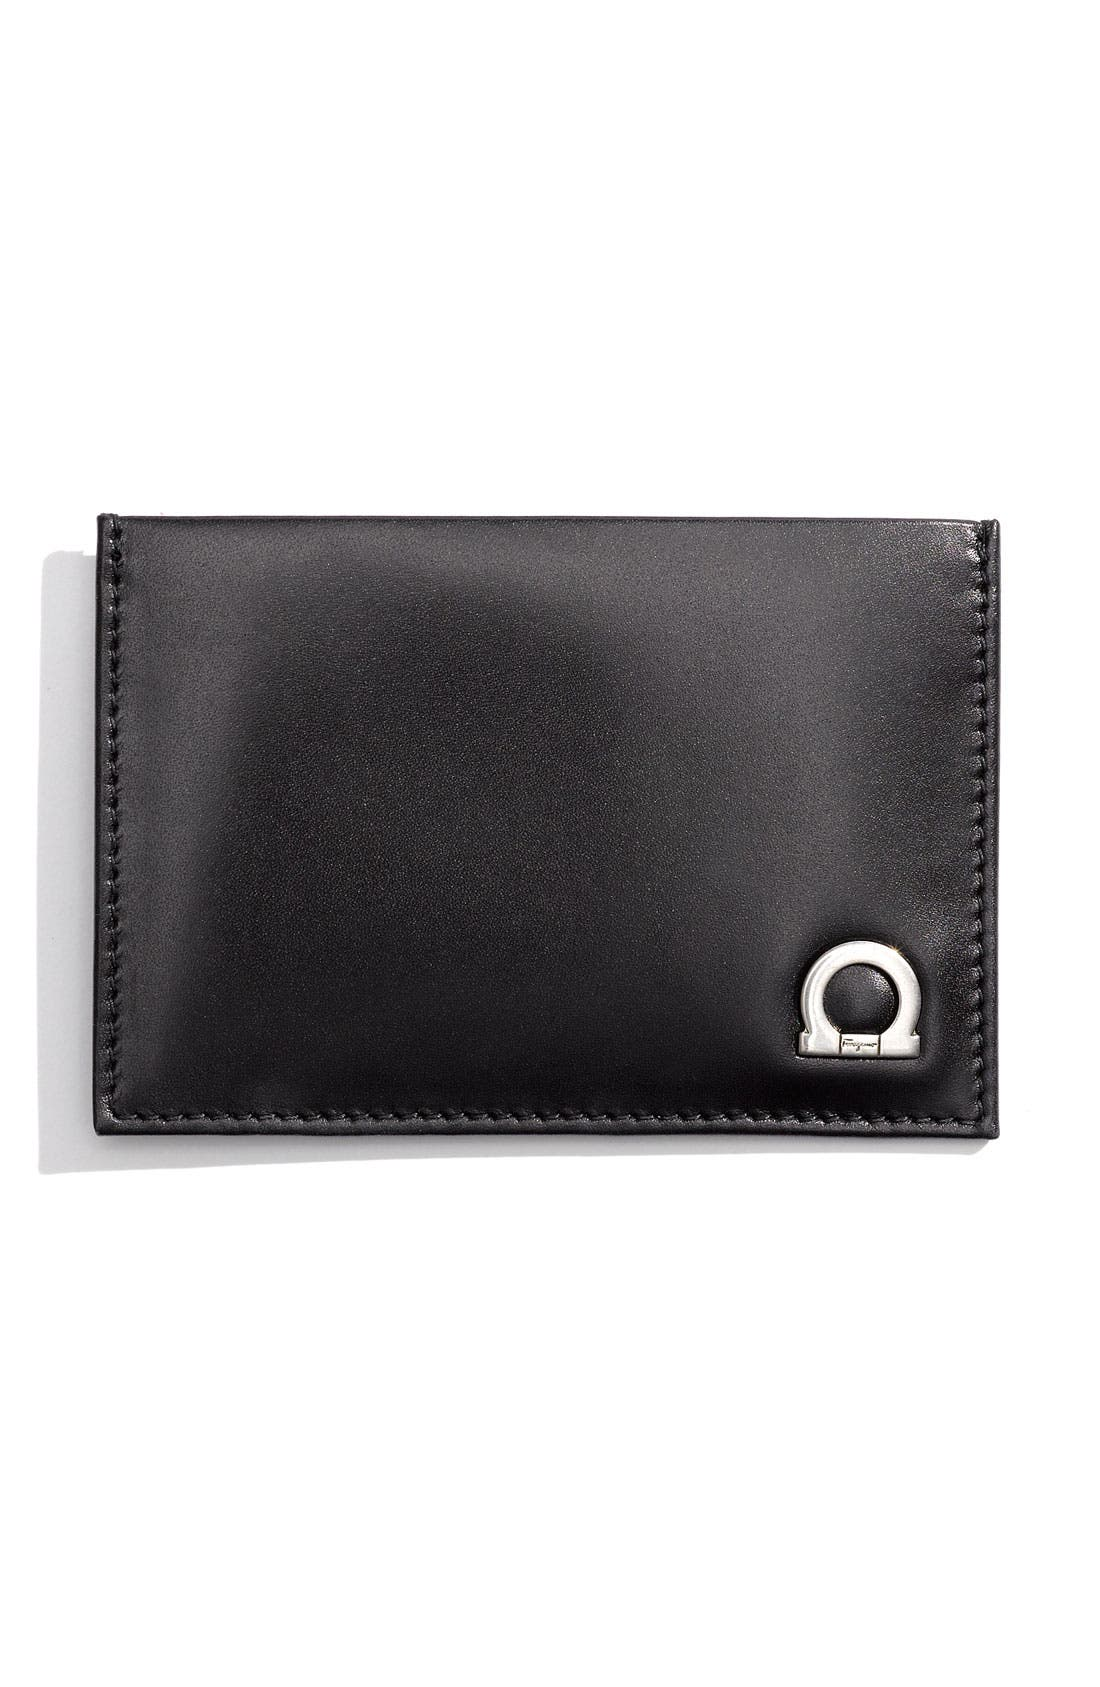 Alternate Image 1 Selected - Salvatore Ferragamo 'Montecarlo' Card Case